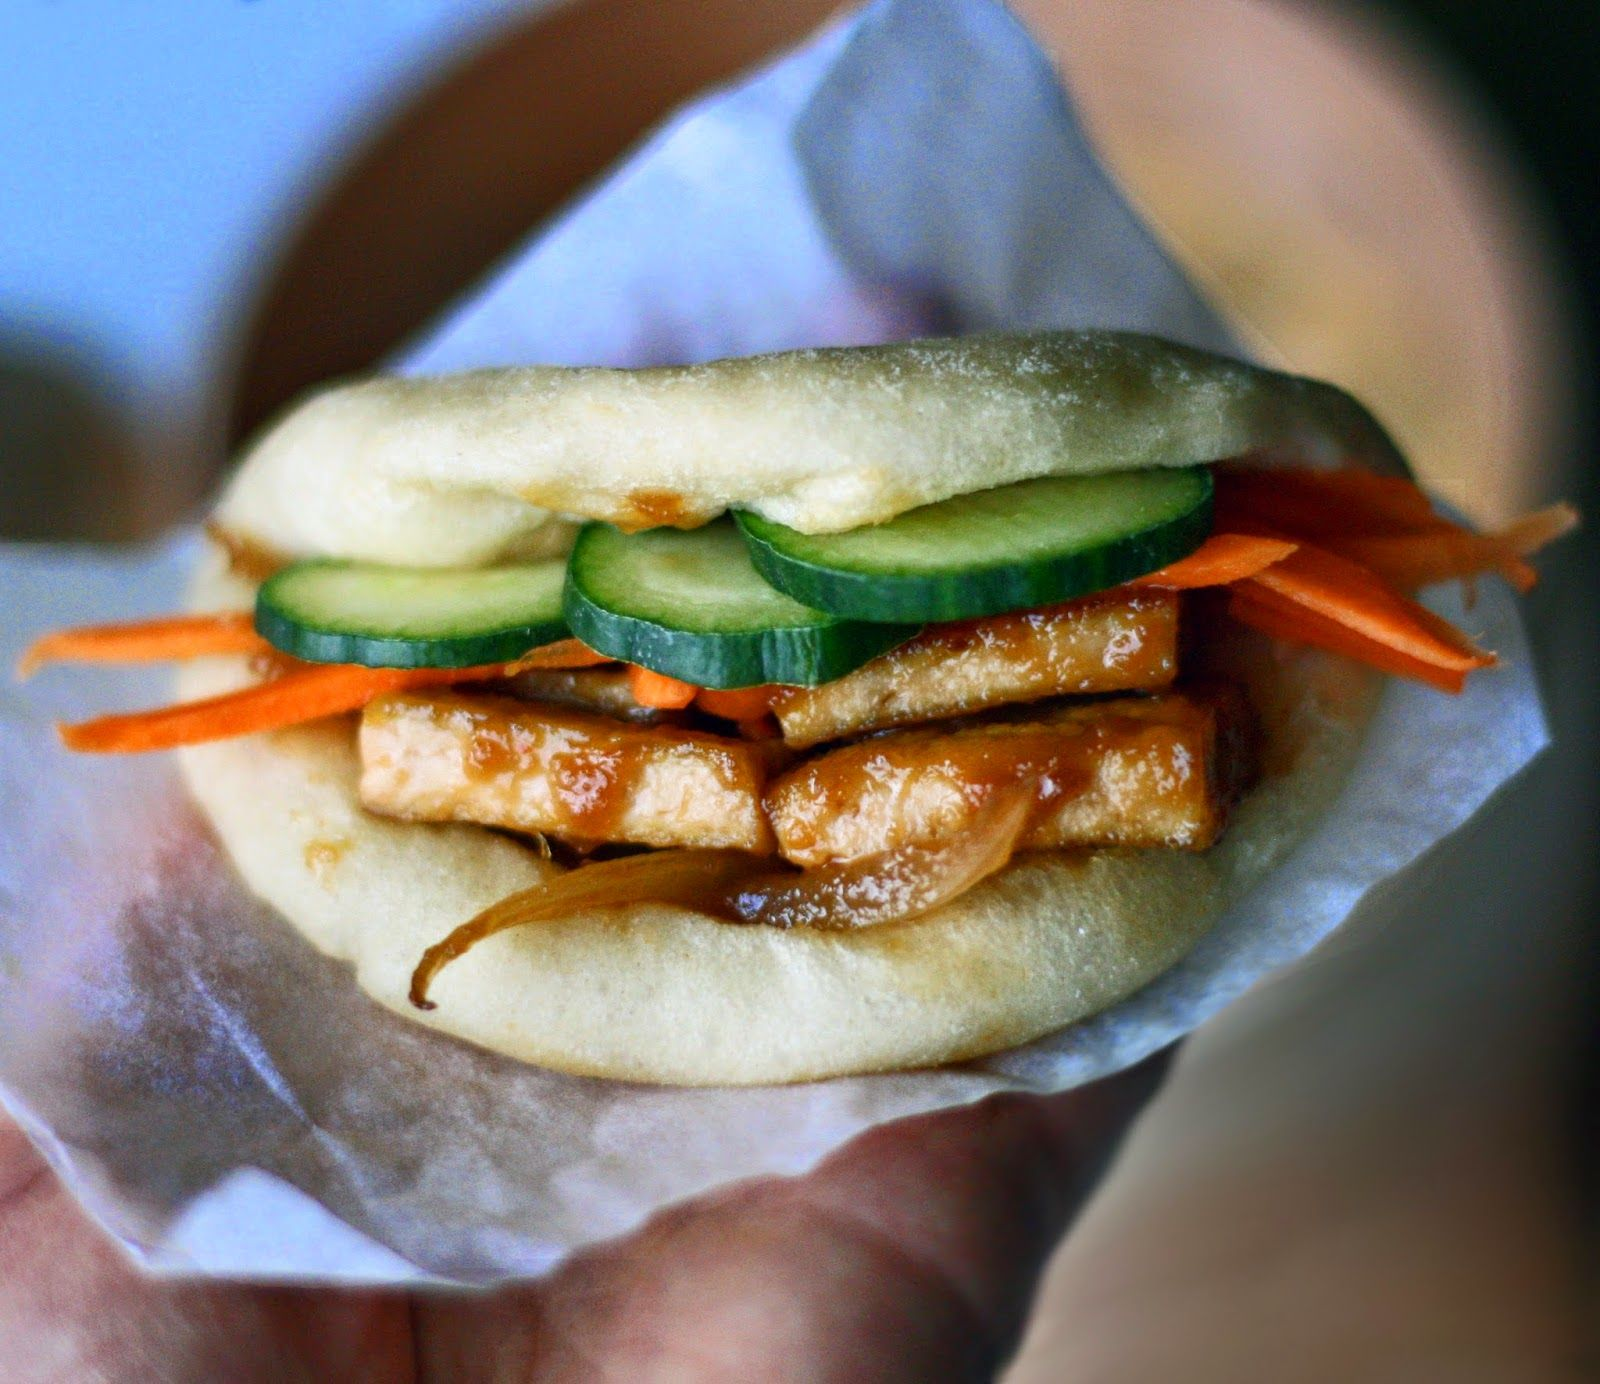 Tofu Gua Baos. Asian style steamed buns filled with caramelized tofu and quick-pickled vegetables. Vegan - by Maikin mokomin